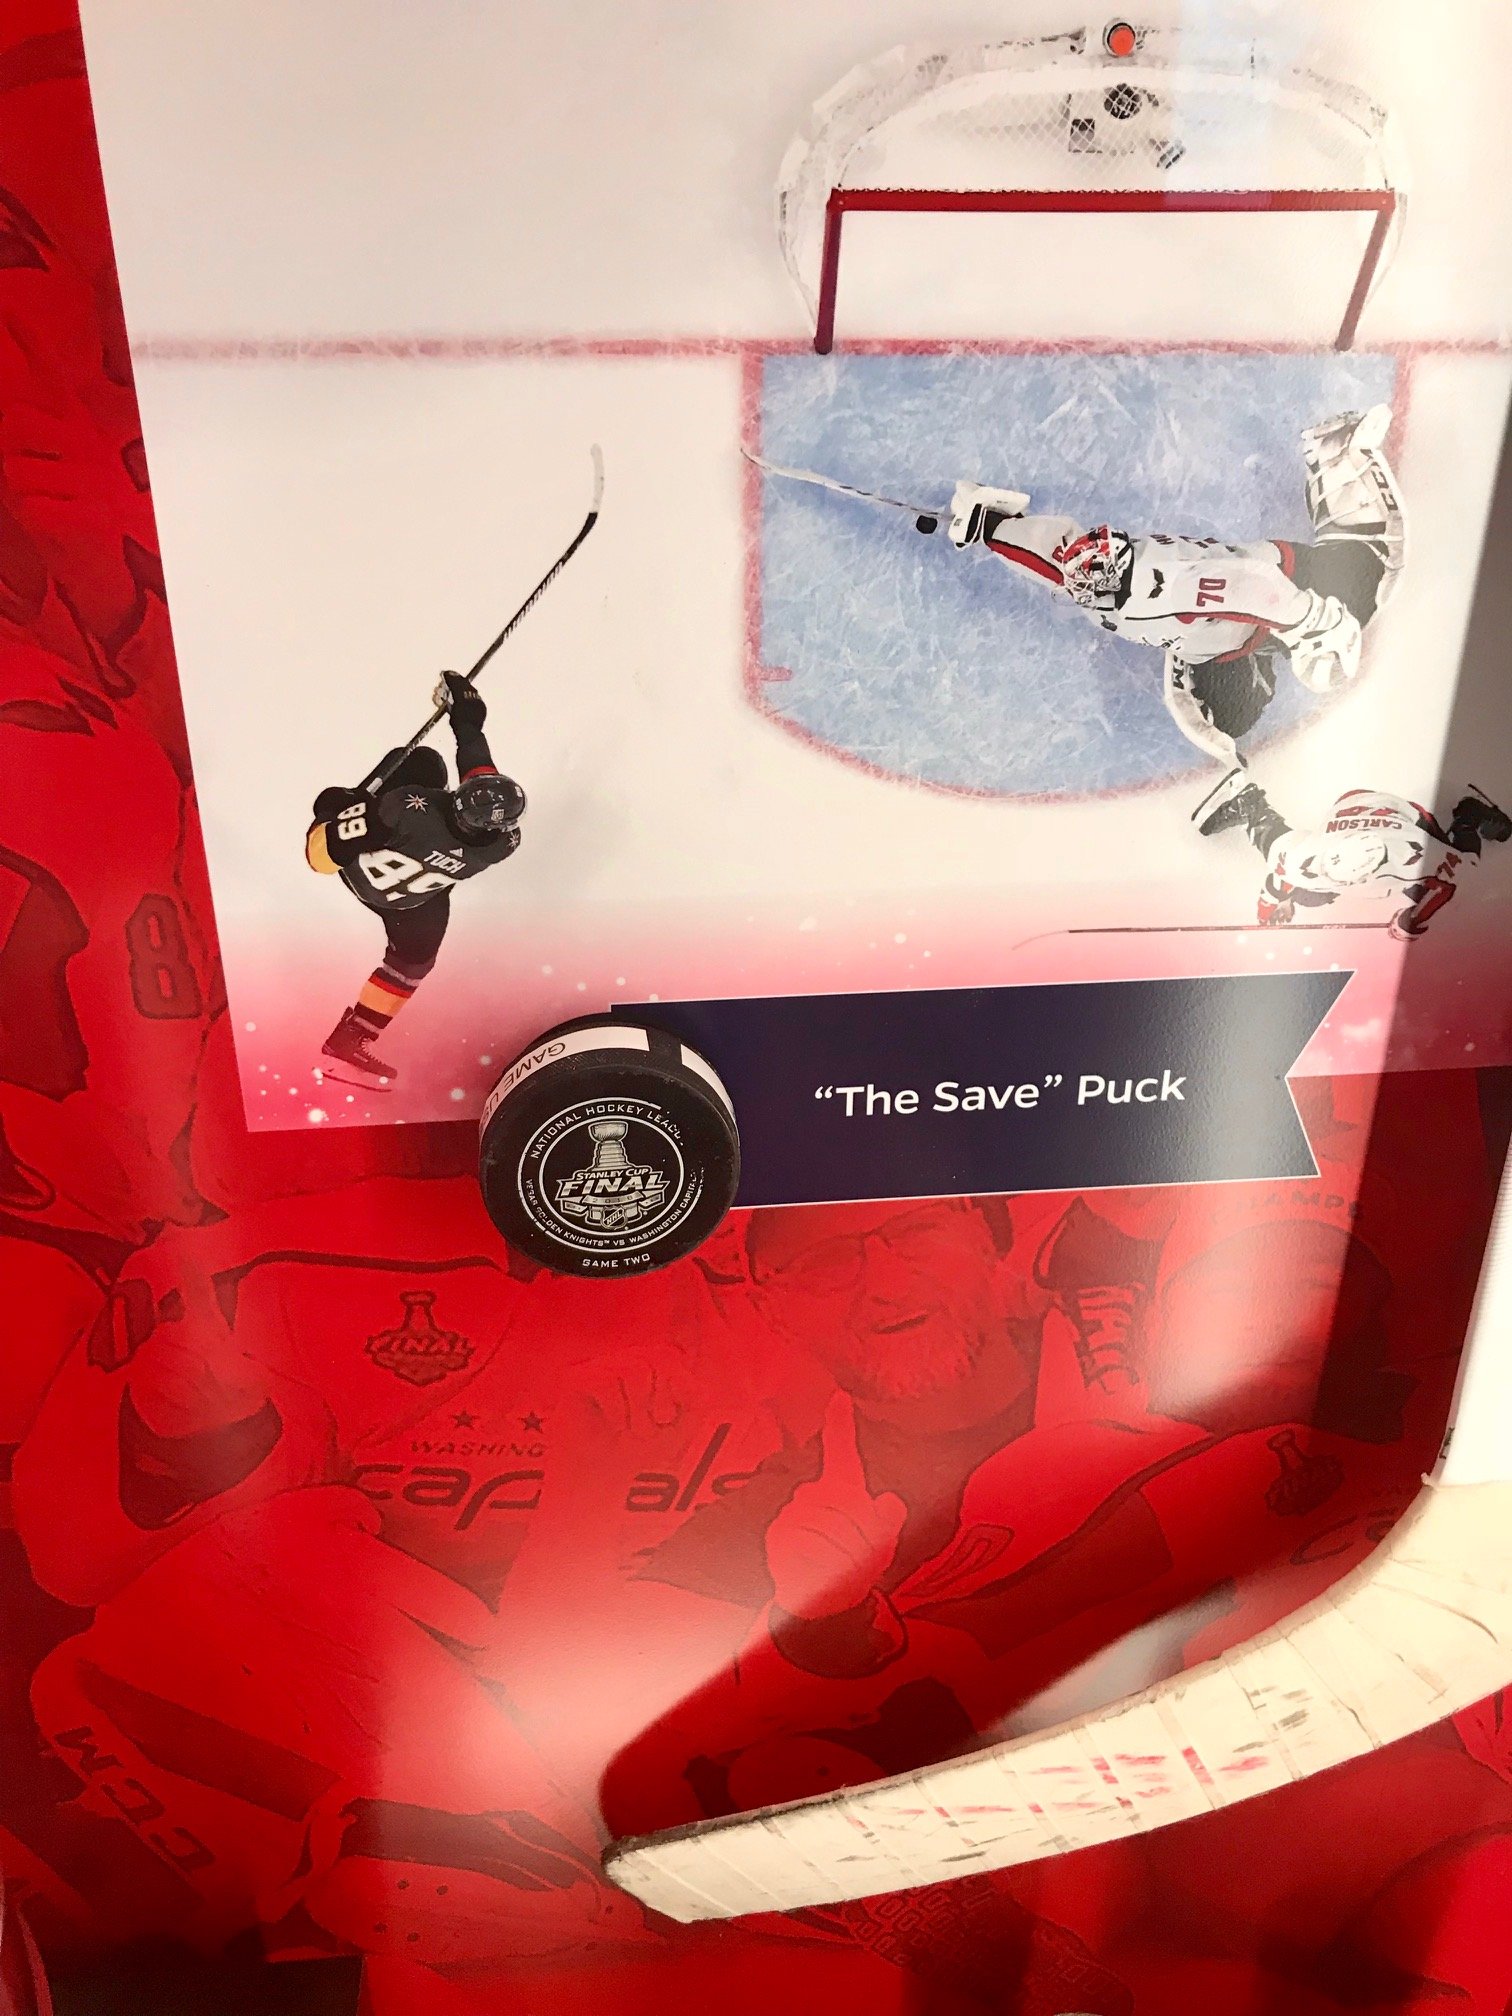 New Stanley Cup Final display features 'The Save' puck and stick